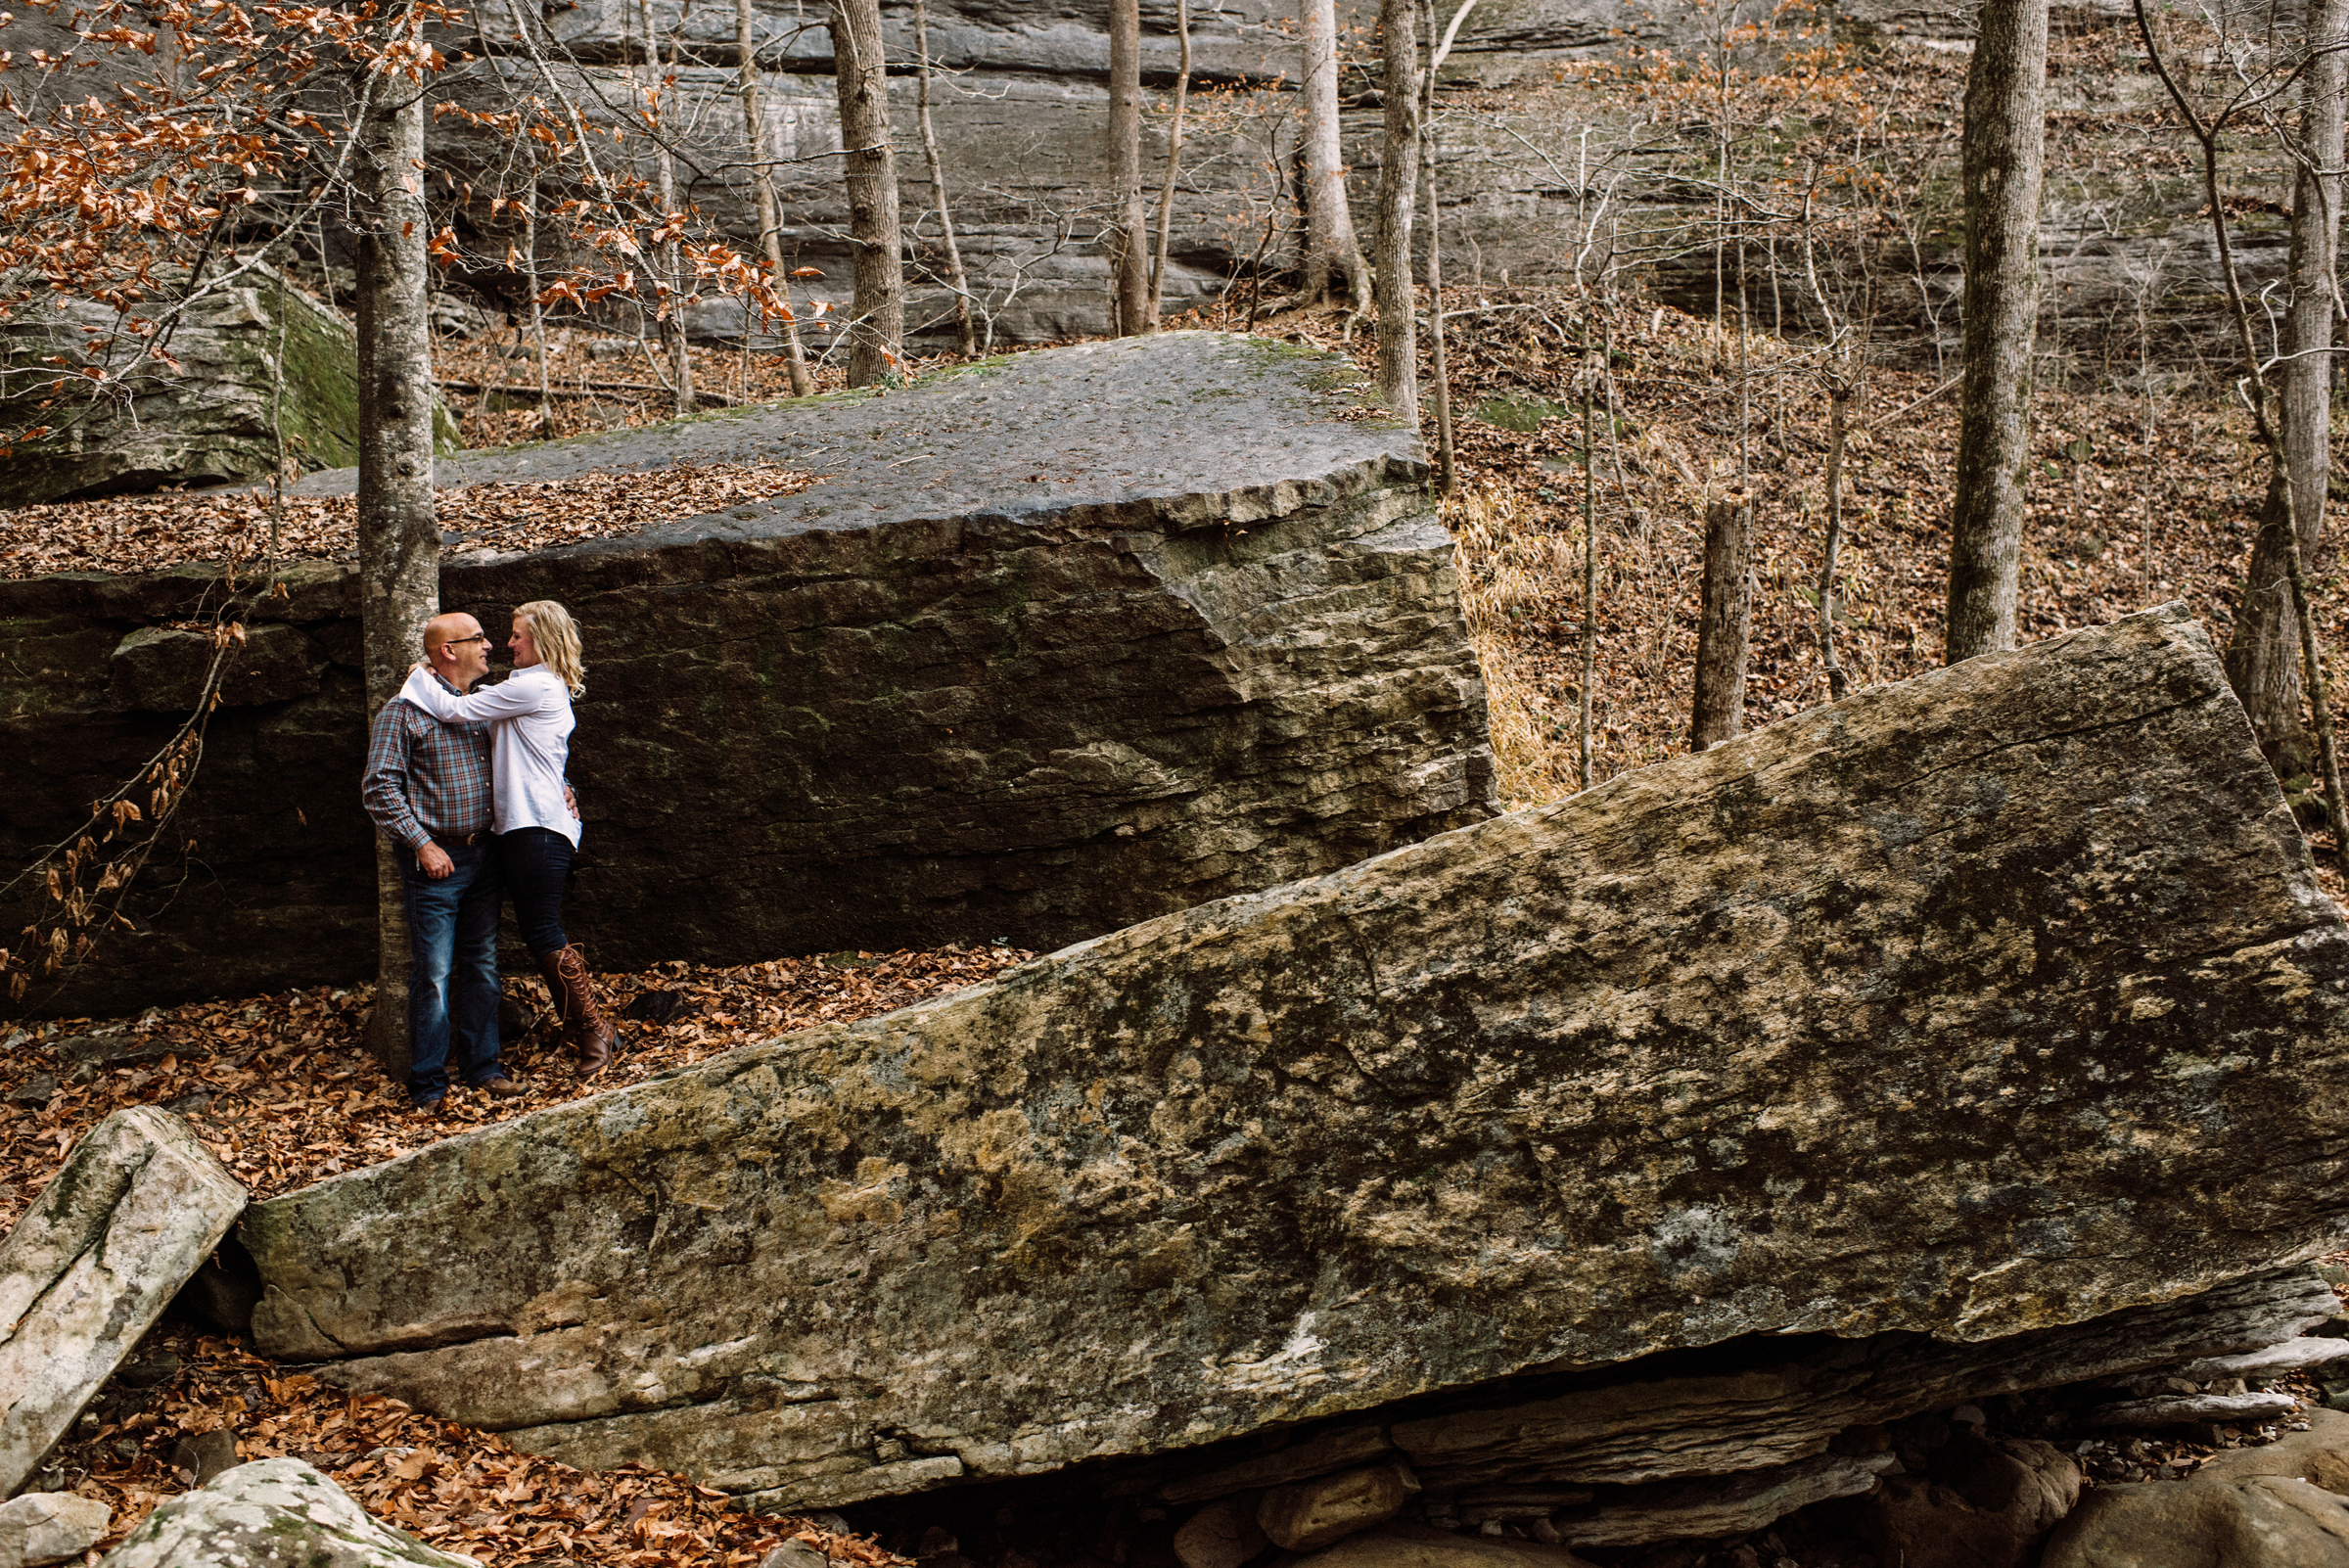 Couple among boulders in woods